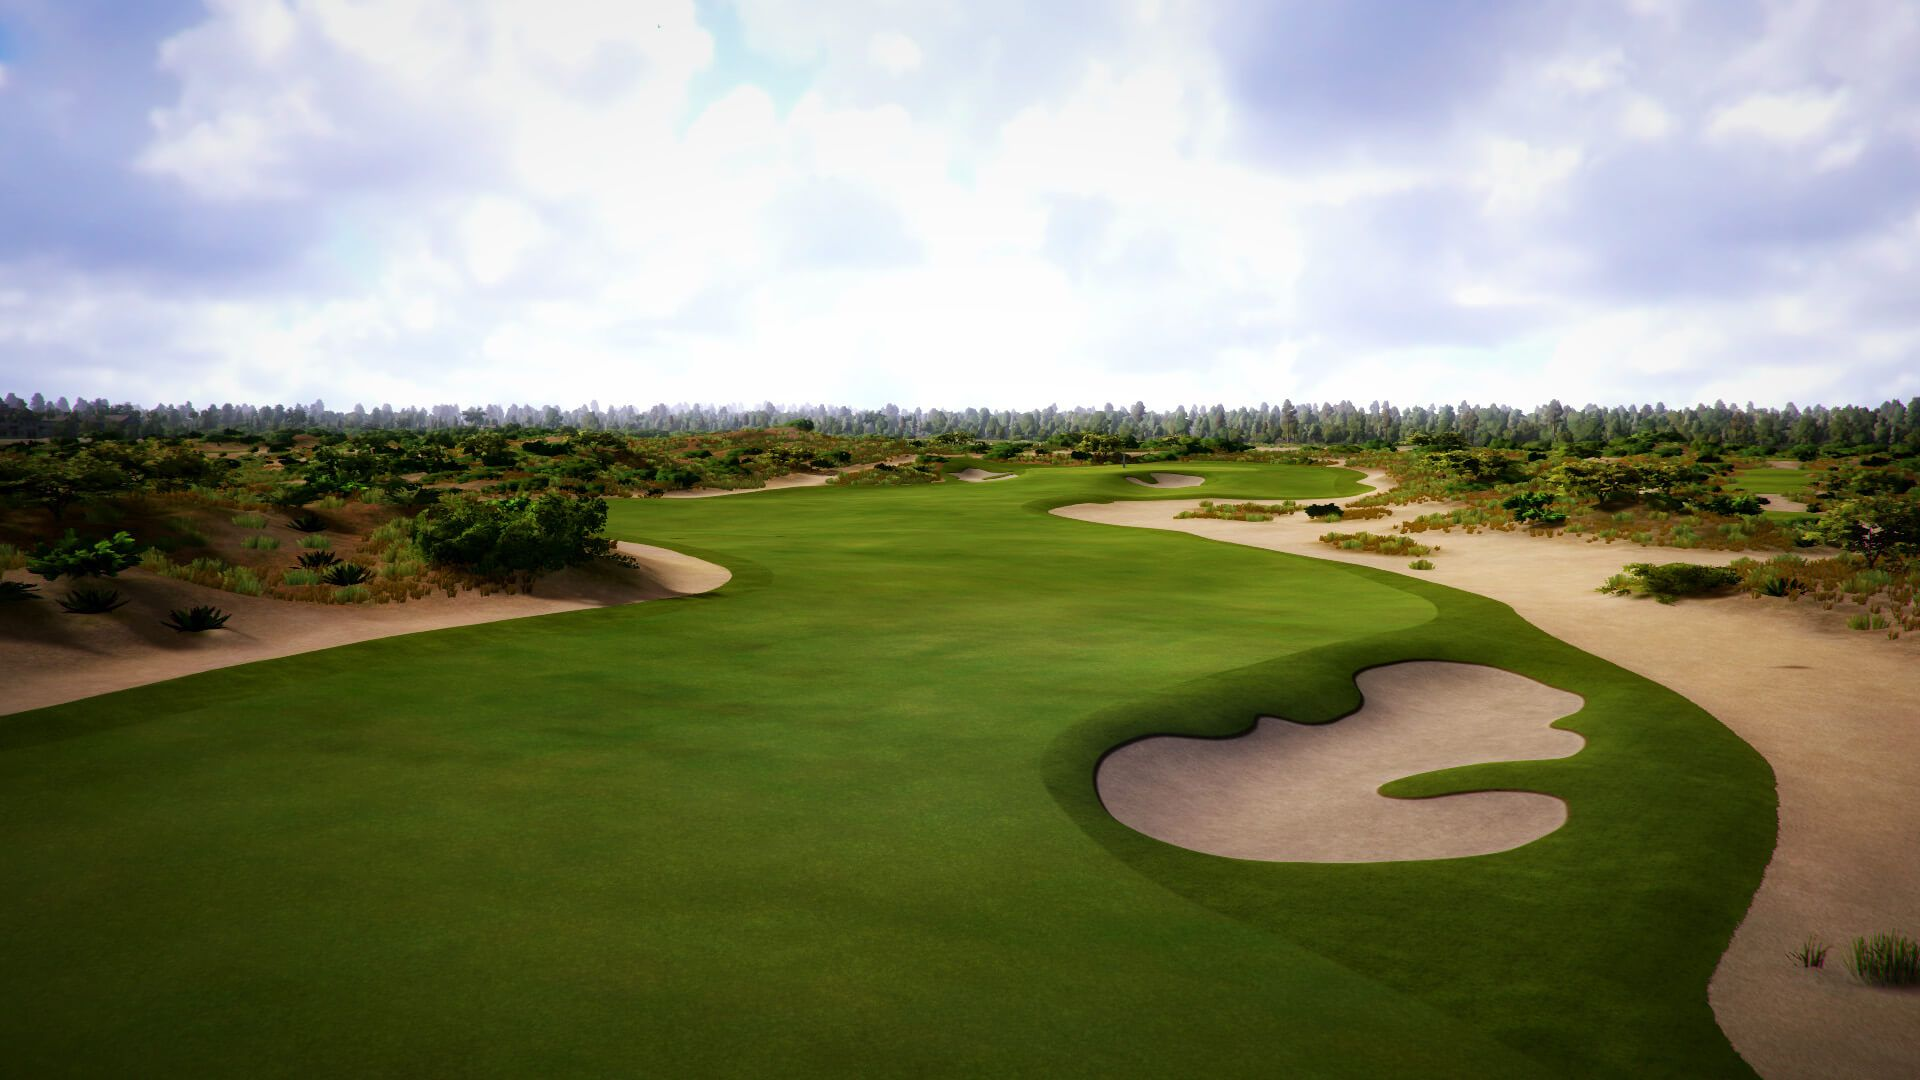 Play Practice And Teach 365 Days A Year Used By The Best Tour Players And Top Coaches Golf Simulators Golf Golf Courses